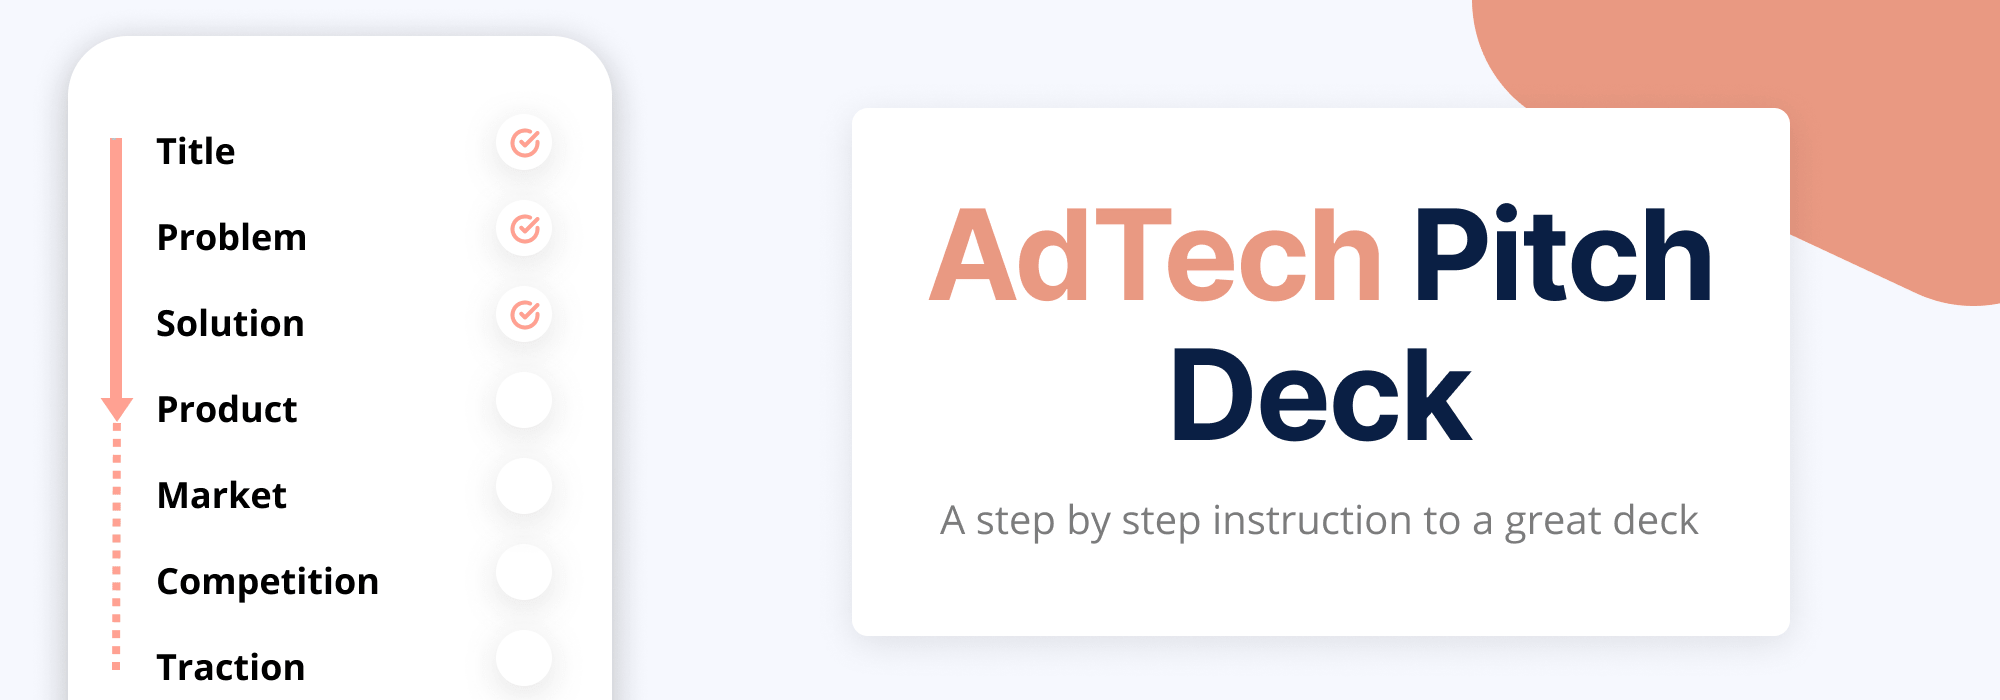 How to Create an Adtech Pitch Deck